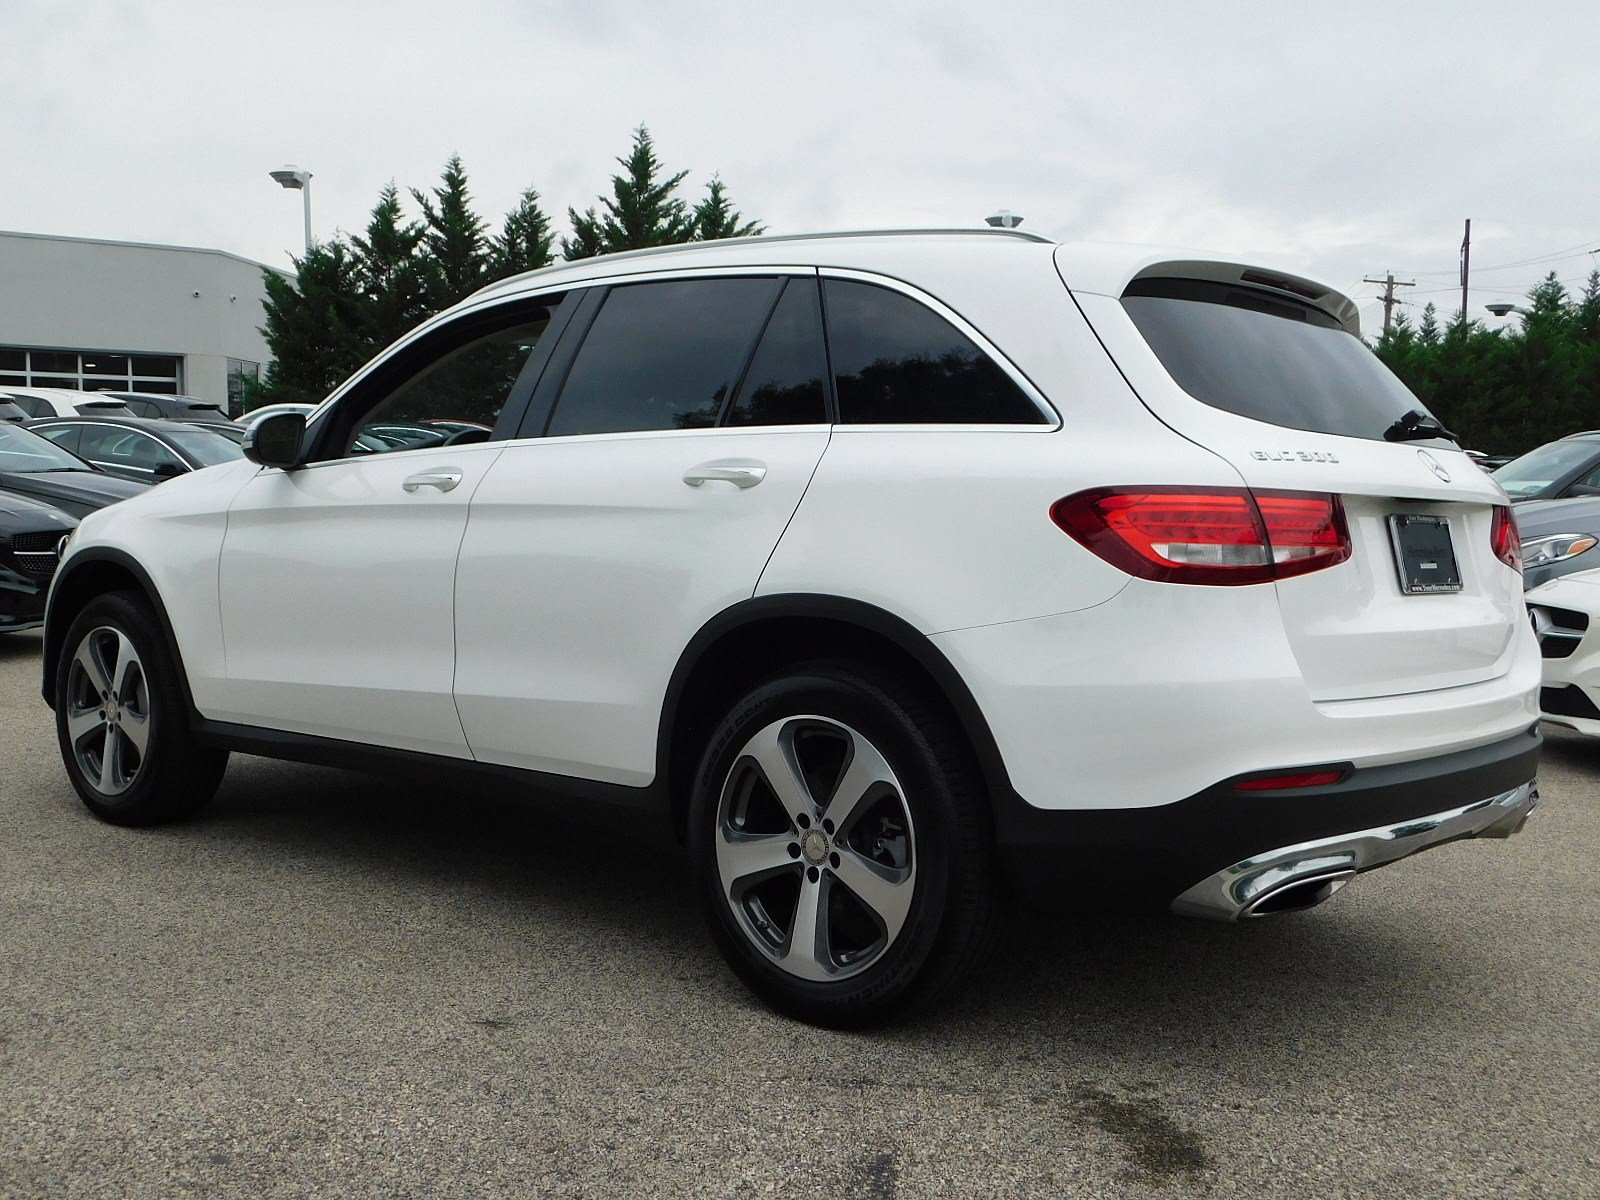 Certified Pre Owned 2016 Mercedes Benz GLC GLC 300 SUV in Fort